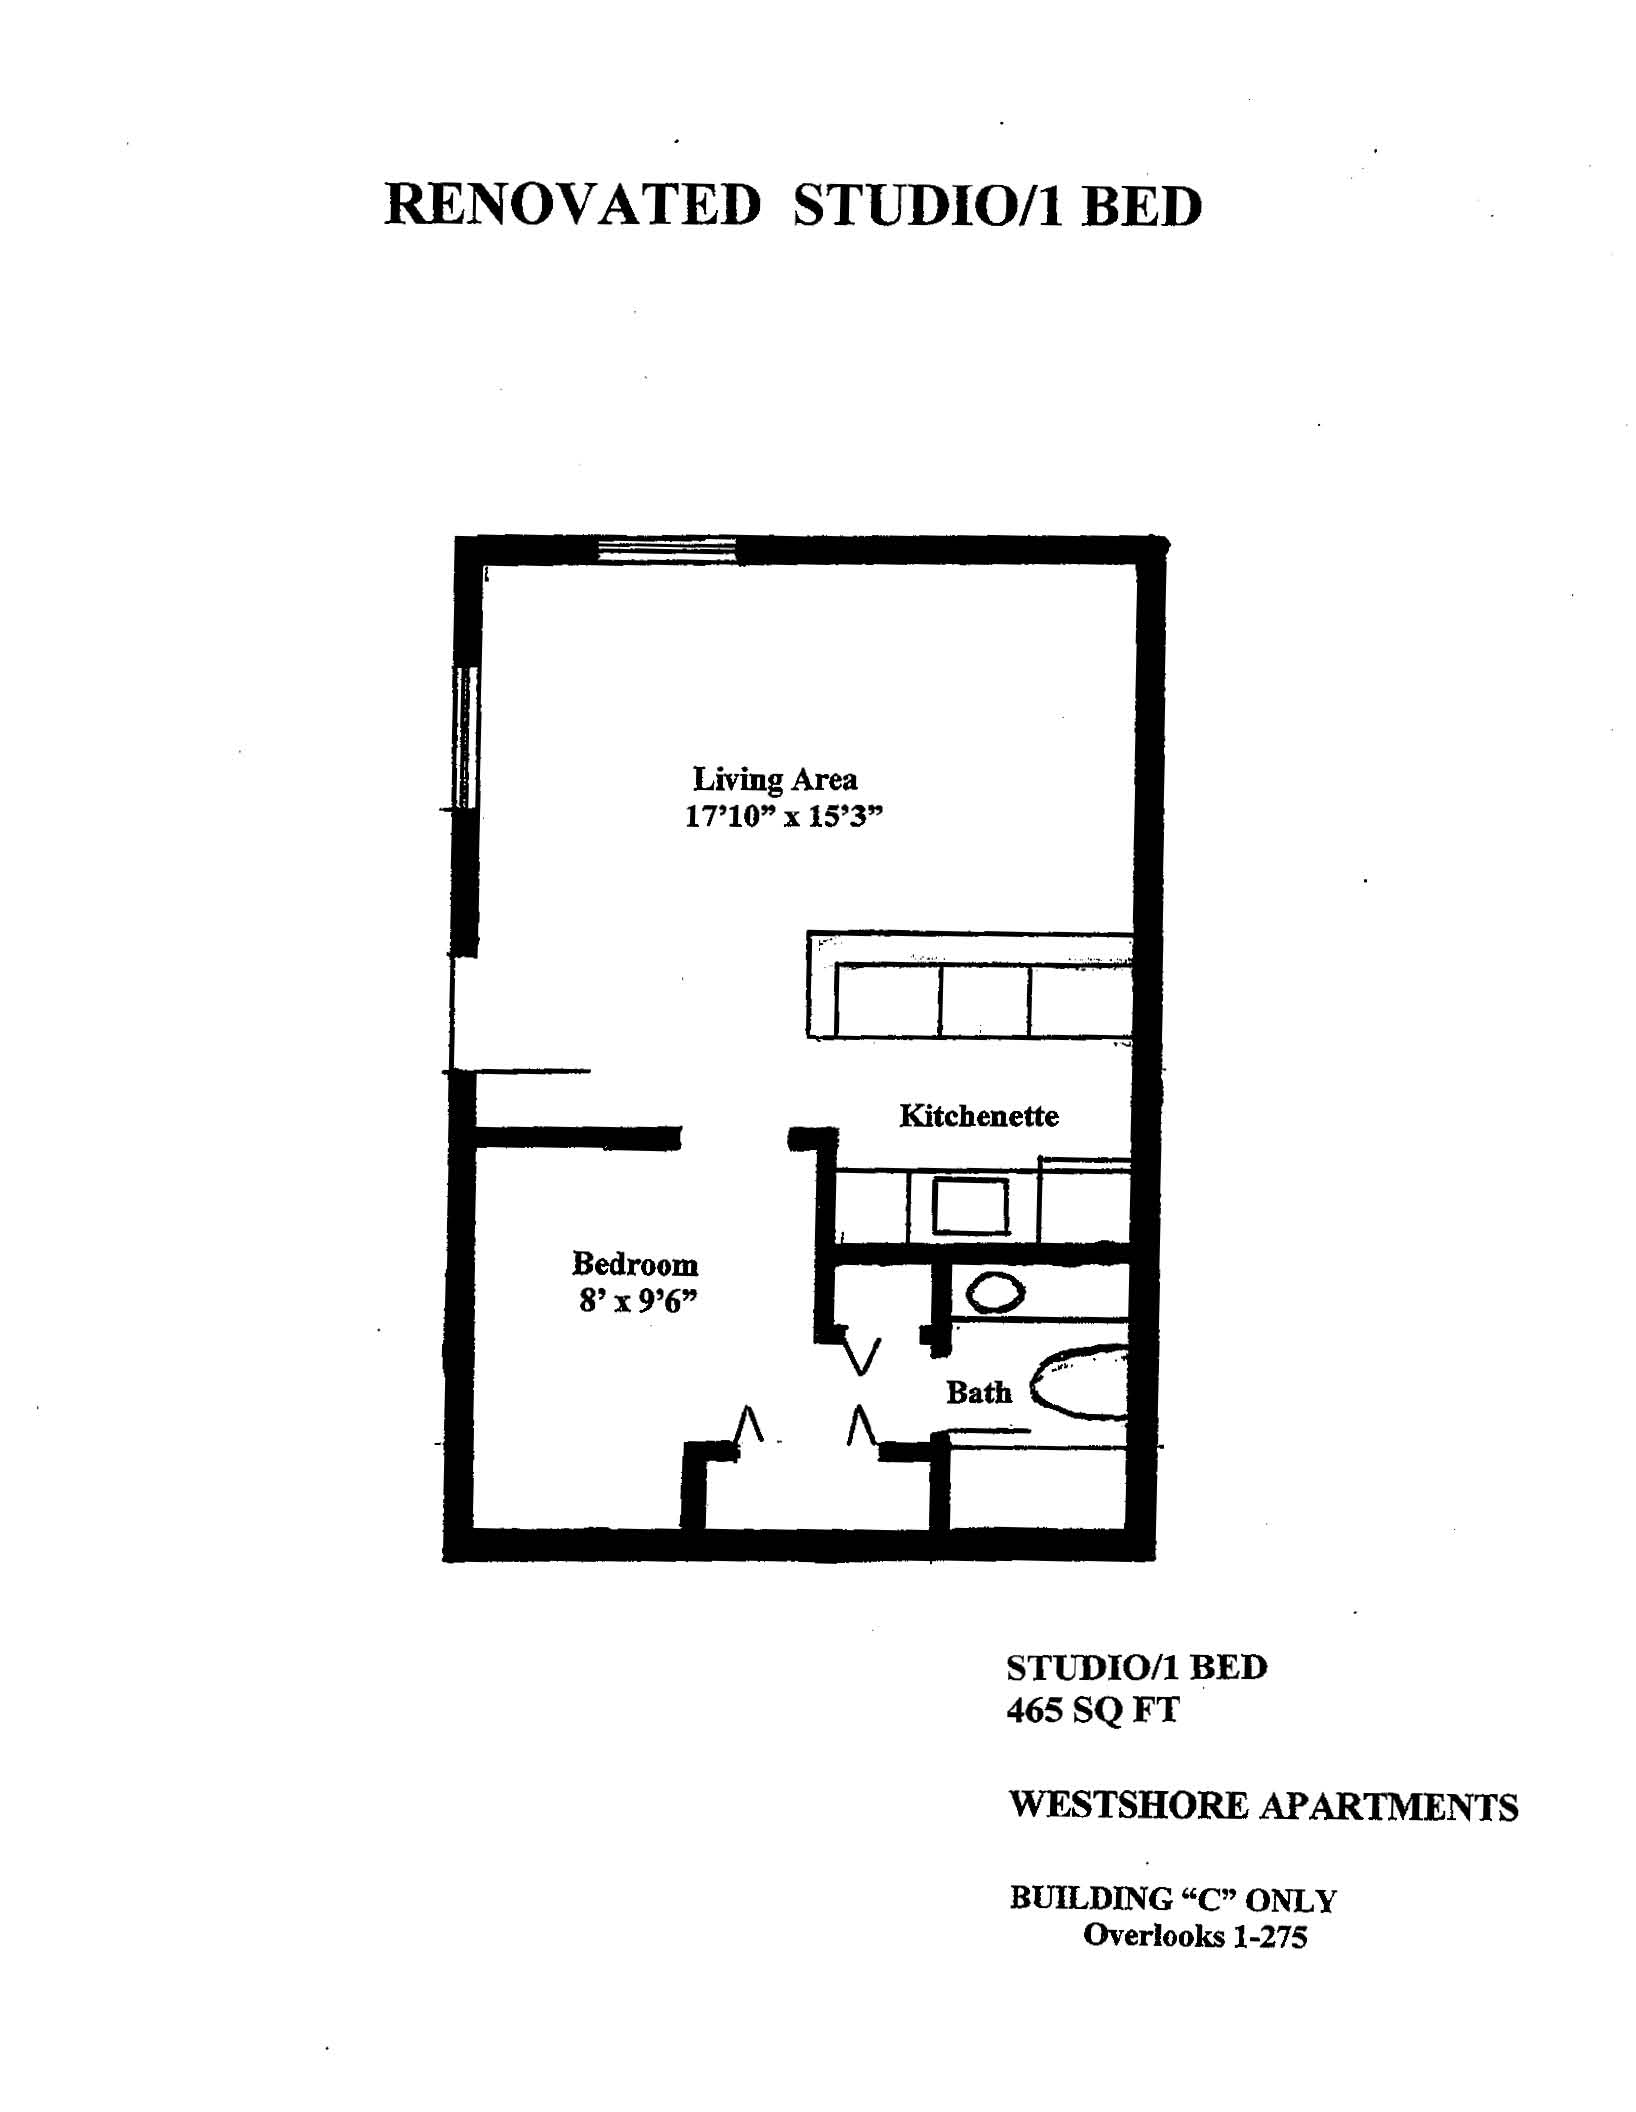 Floorplan - Westshore- Studio/1 Bed Mini image